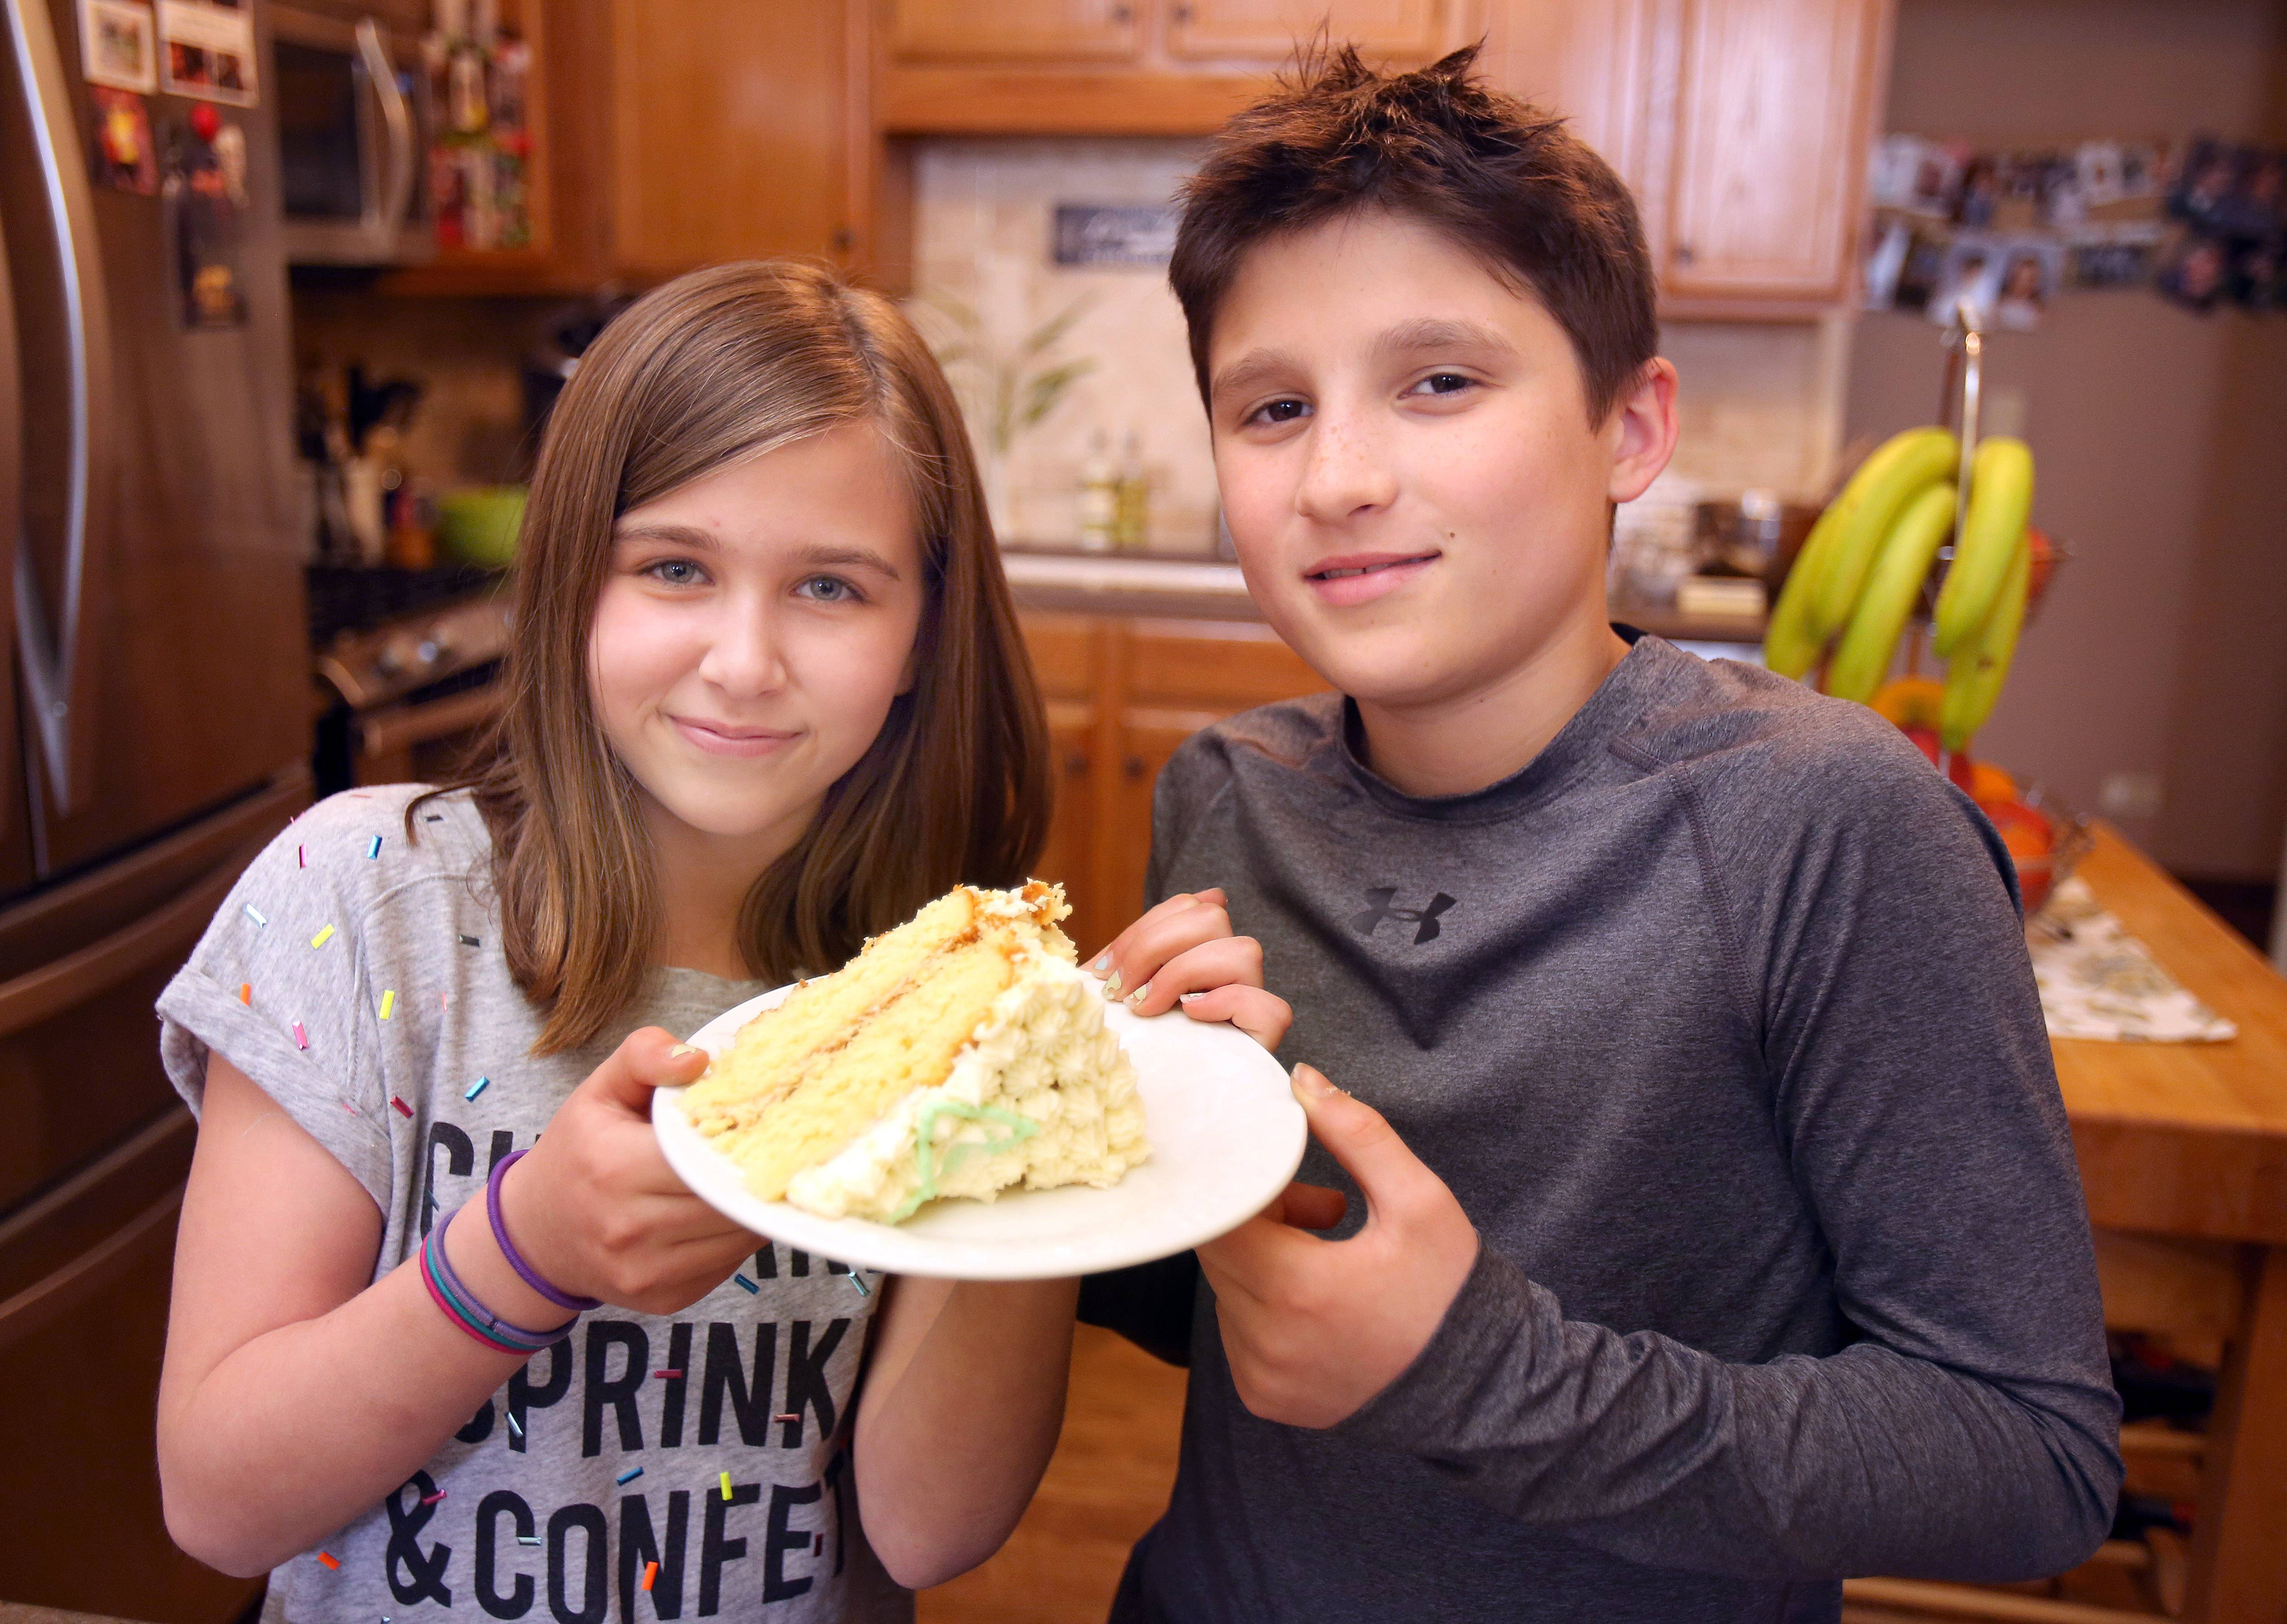 Cousins 11-year-old Audrey Silverman and 9-year-old Blaise LaVista, both of Gurnee hold a piece of their lemon cake.